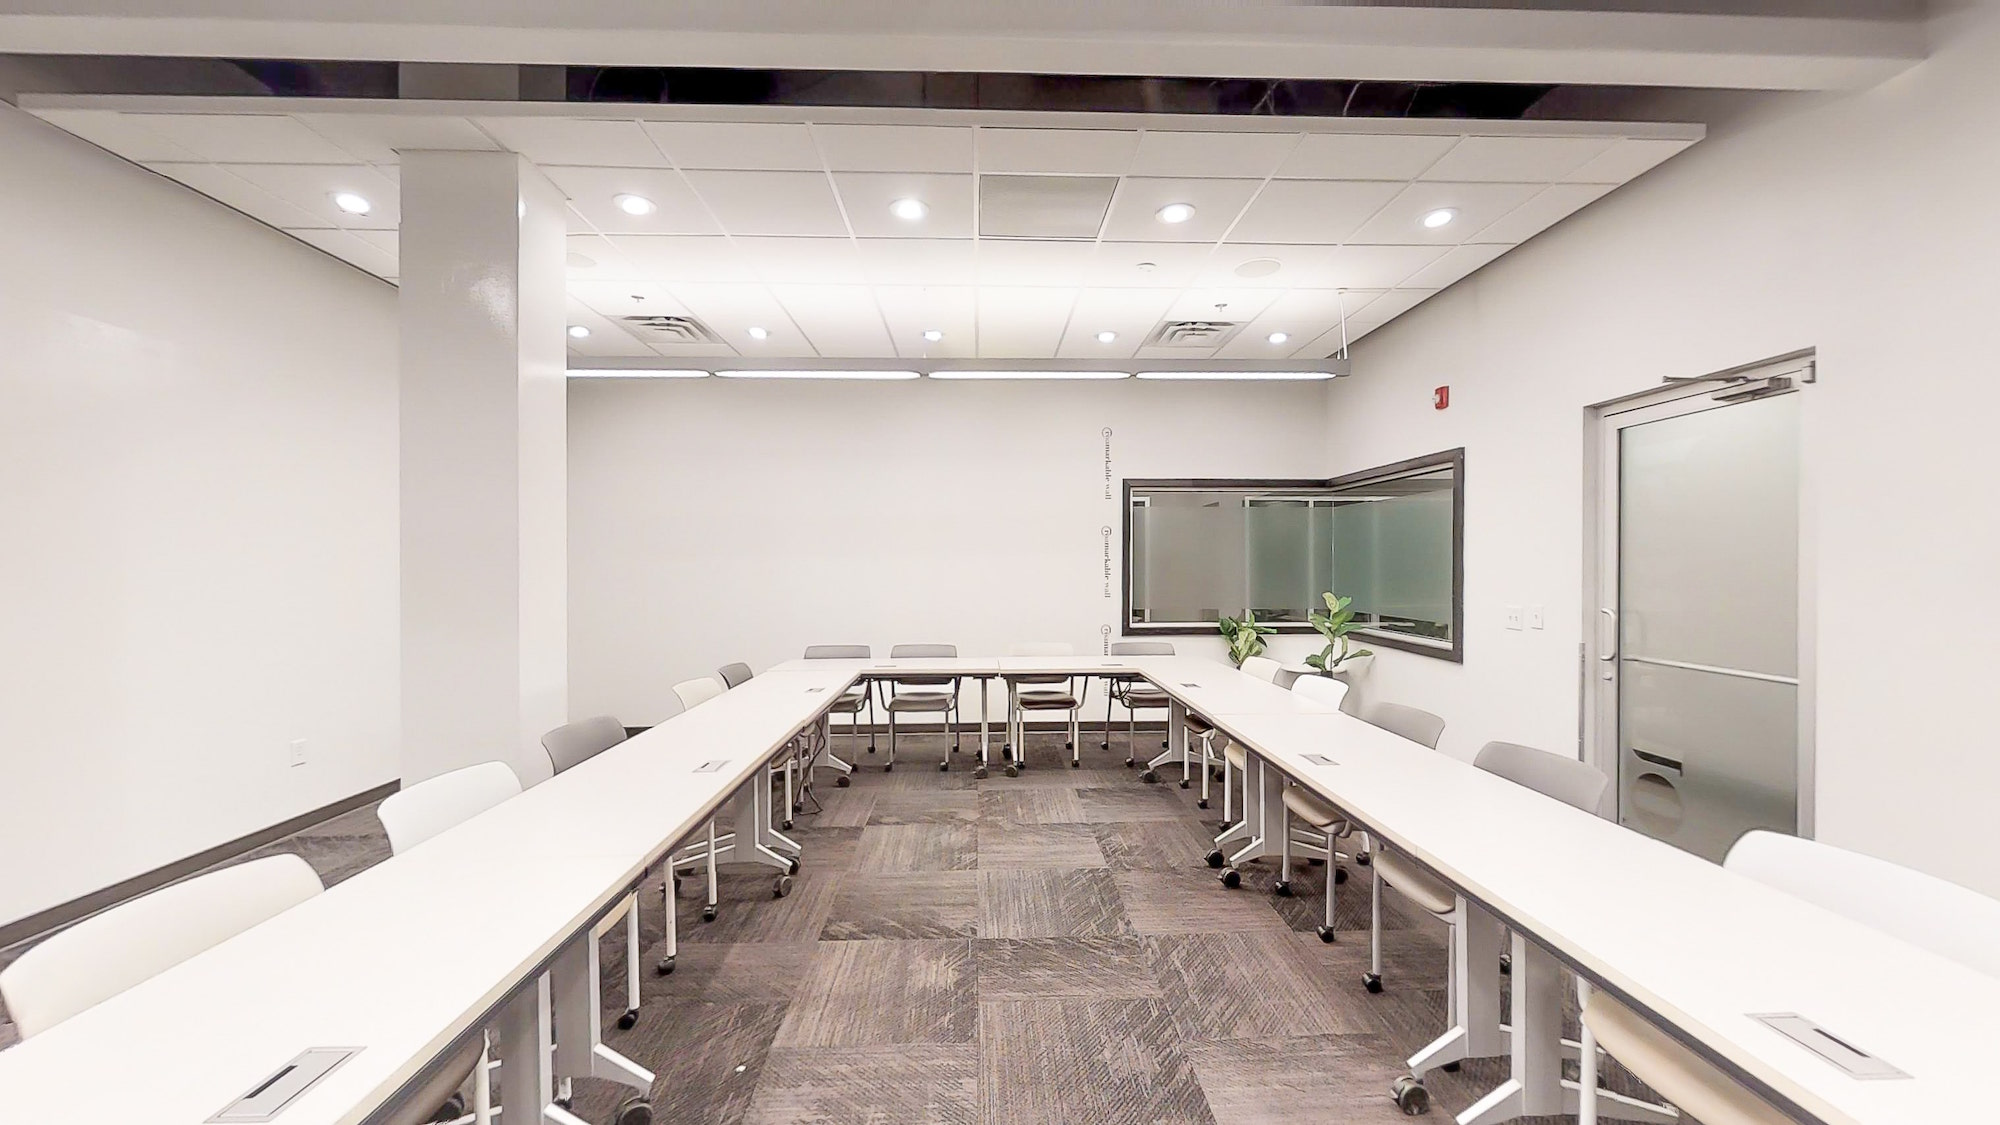 Ushape seating and frosted window in Roam Galleria meeting room